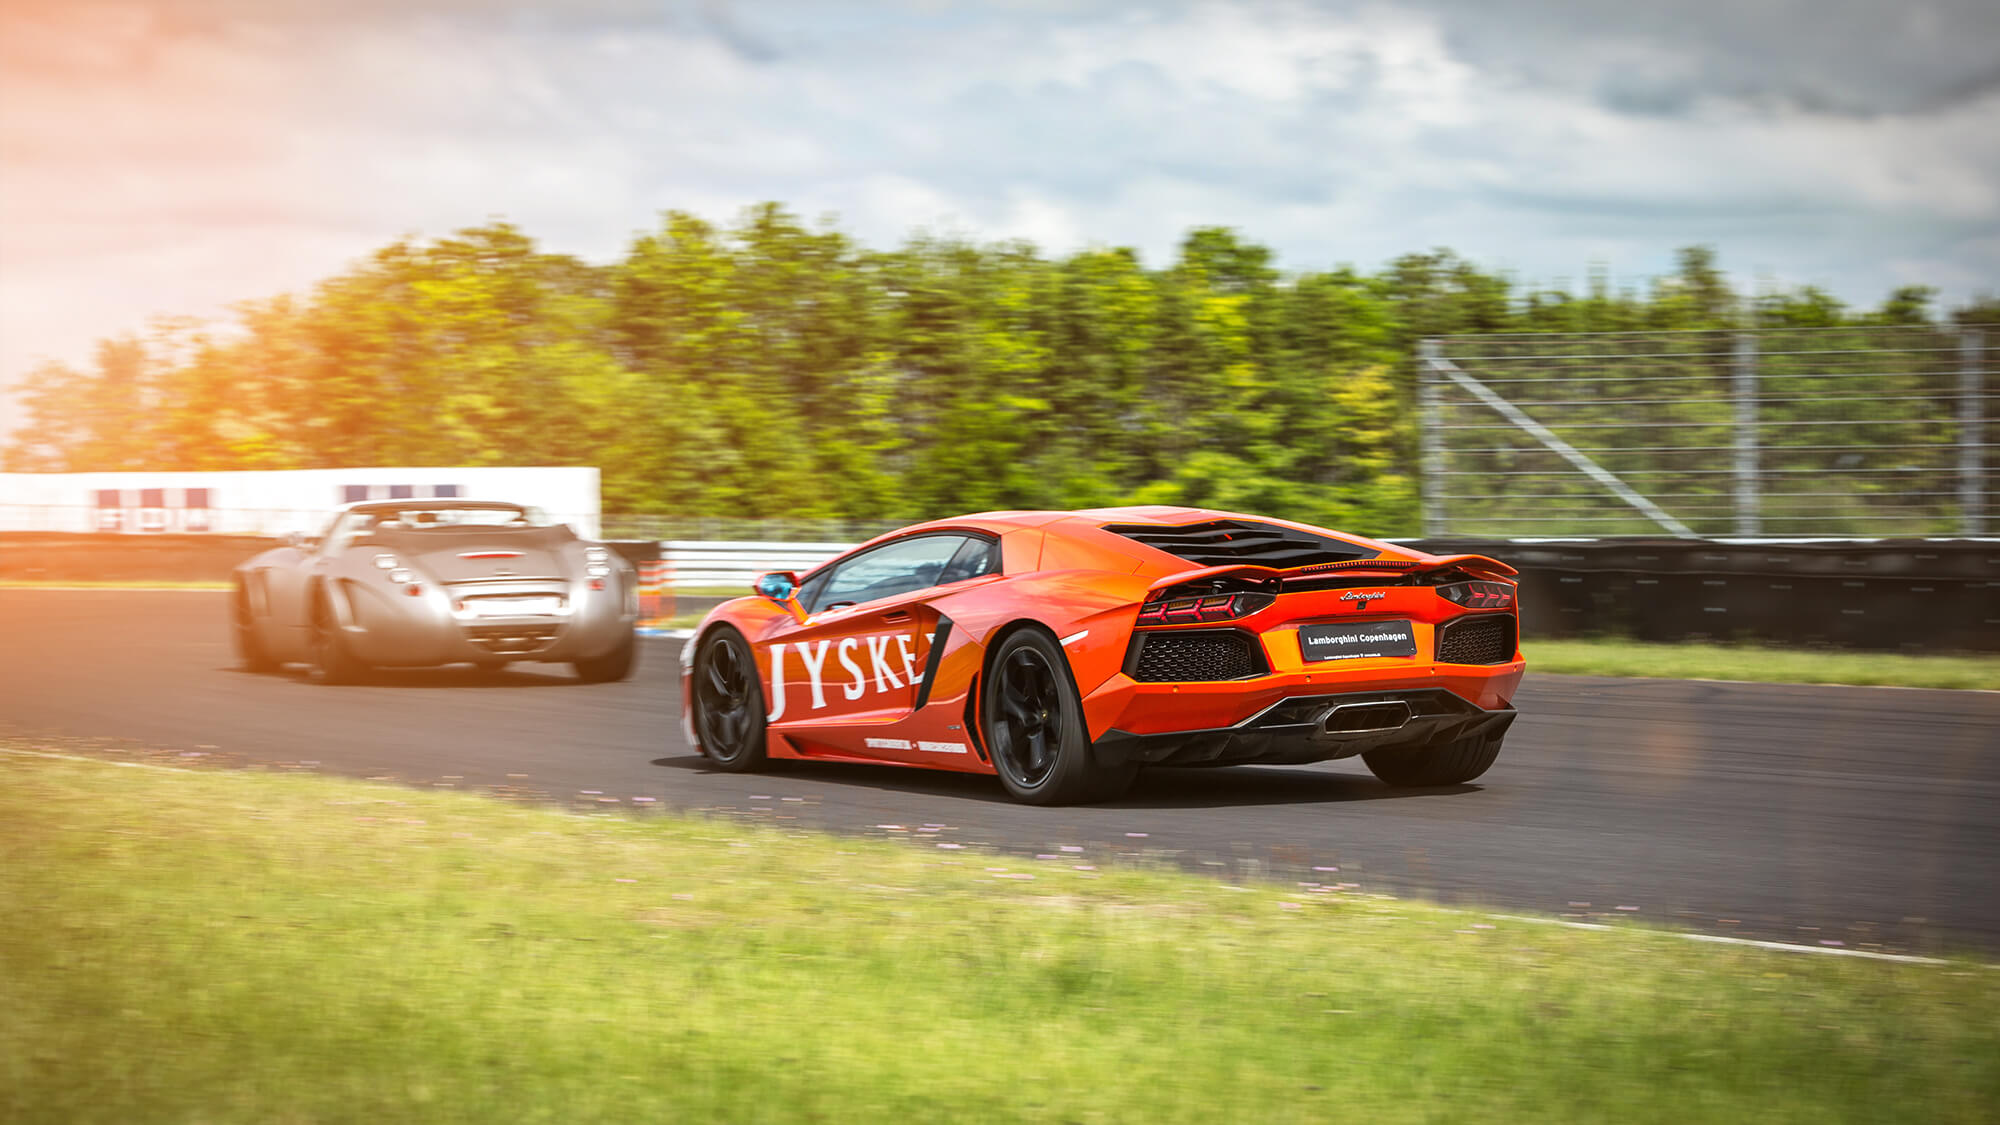 Orange Lamborghini Aventrador at Bornecancerfonden event - location Jyllandsringen in Denmark